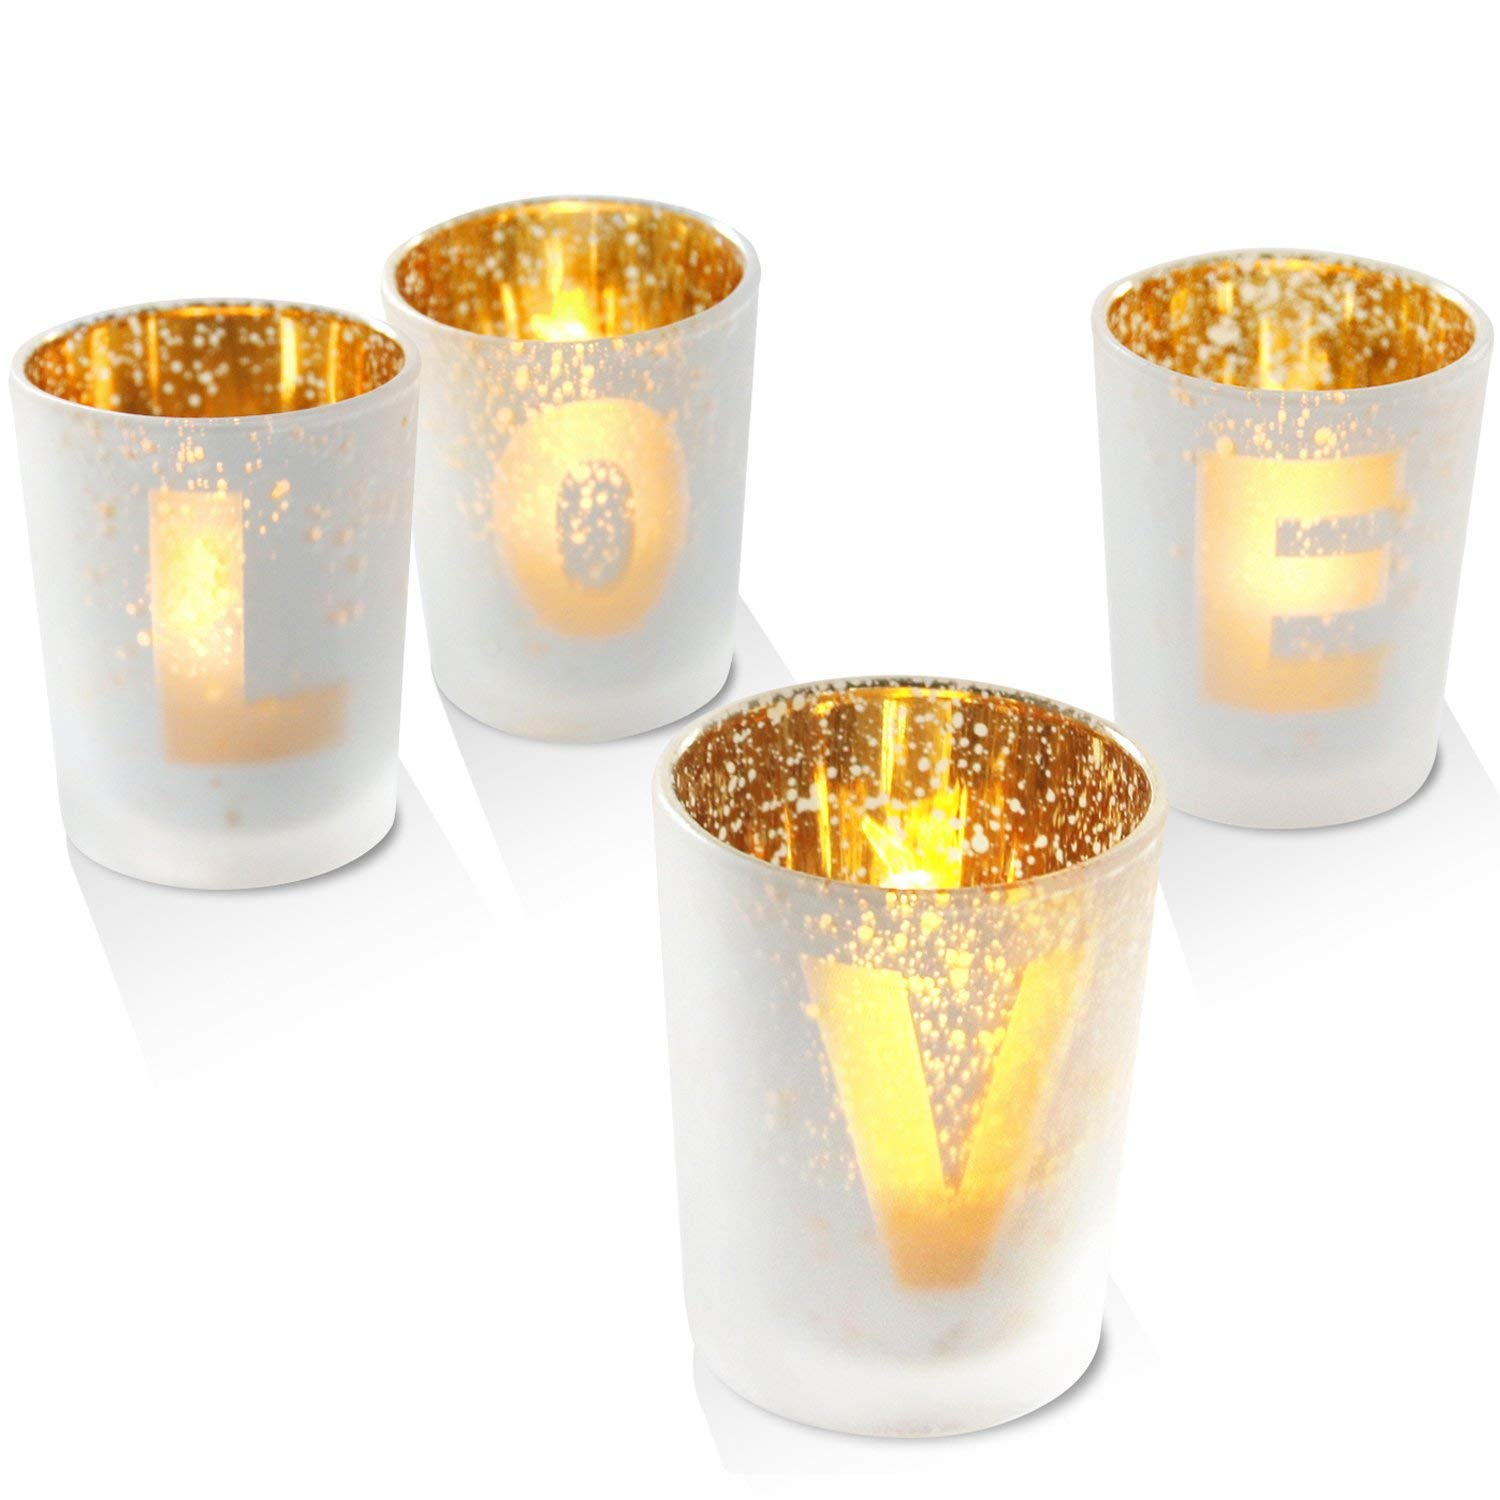 CODOHI Votive Candle Holders Gold Glass Love Letter Printed Tealight Candle Holder Set of 4-for Dining Table, Perfect for Anniversary/Wedding/Housewarming